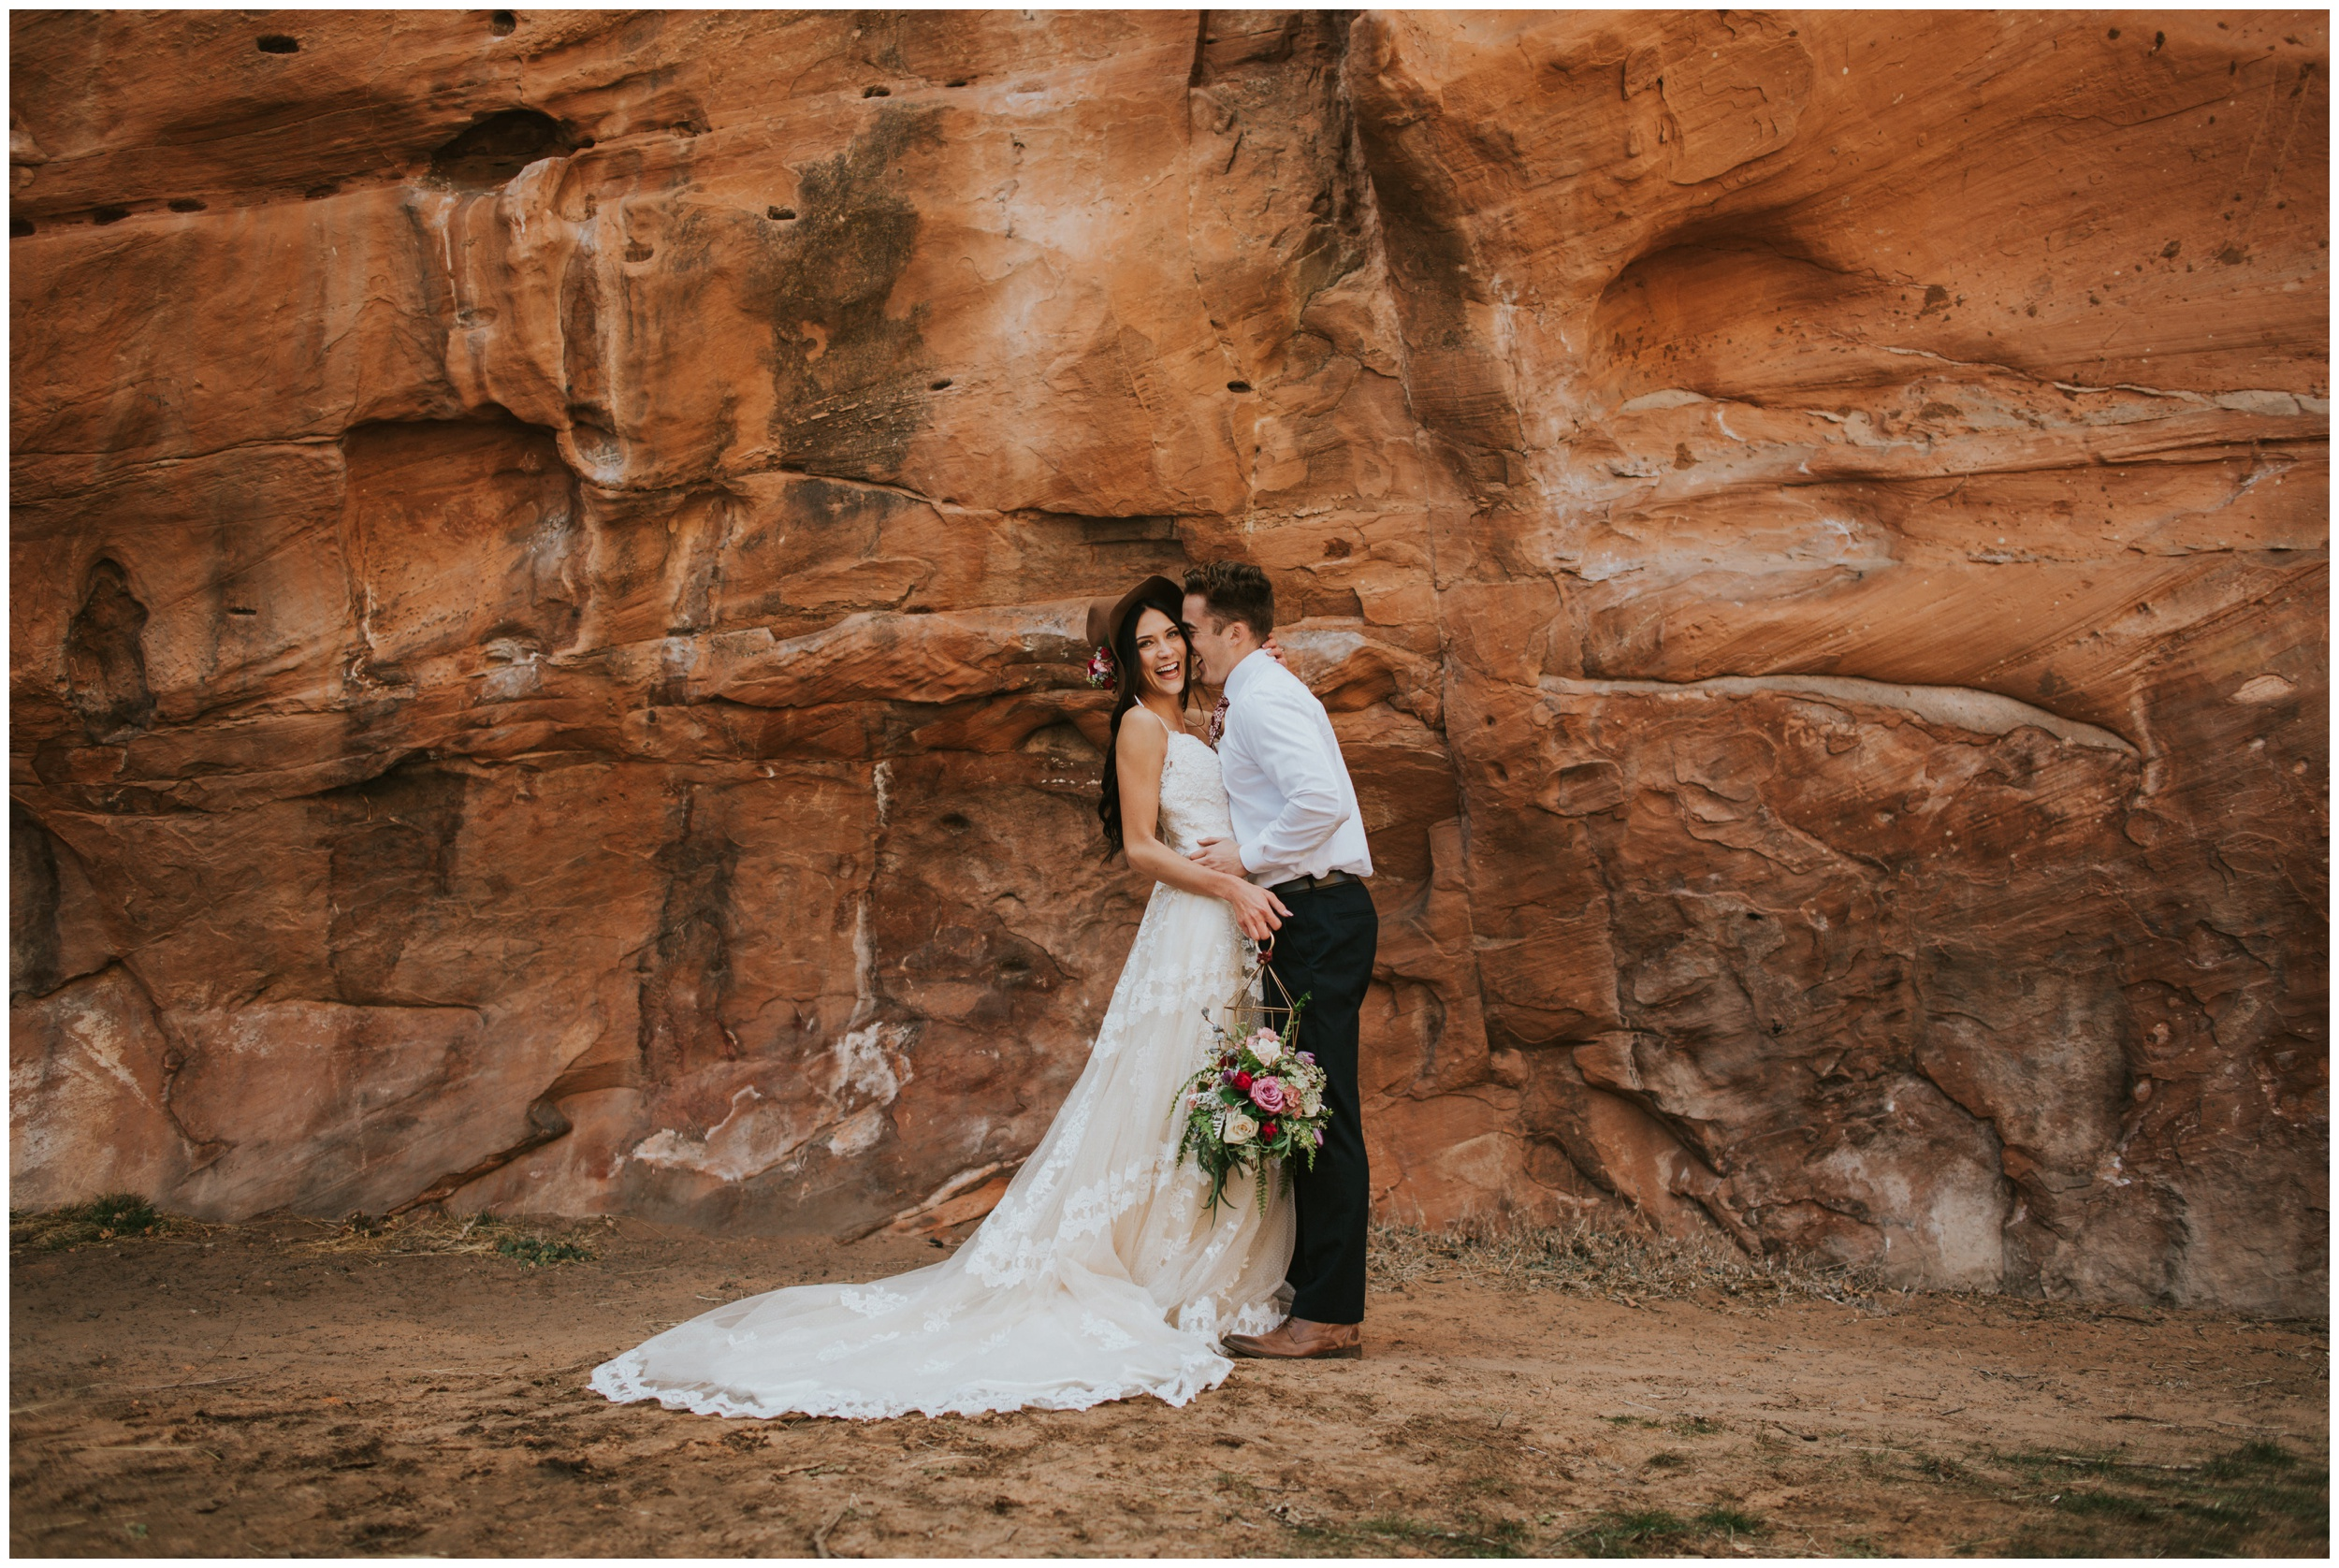 redrockutah-idahophotographer-utahphotographer-wedding-59.jpg